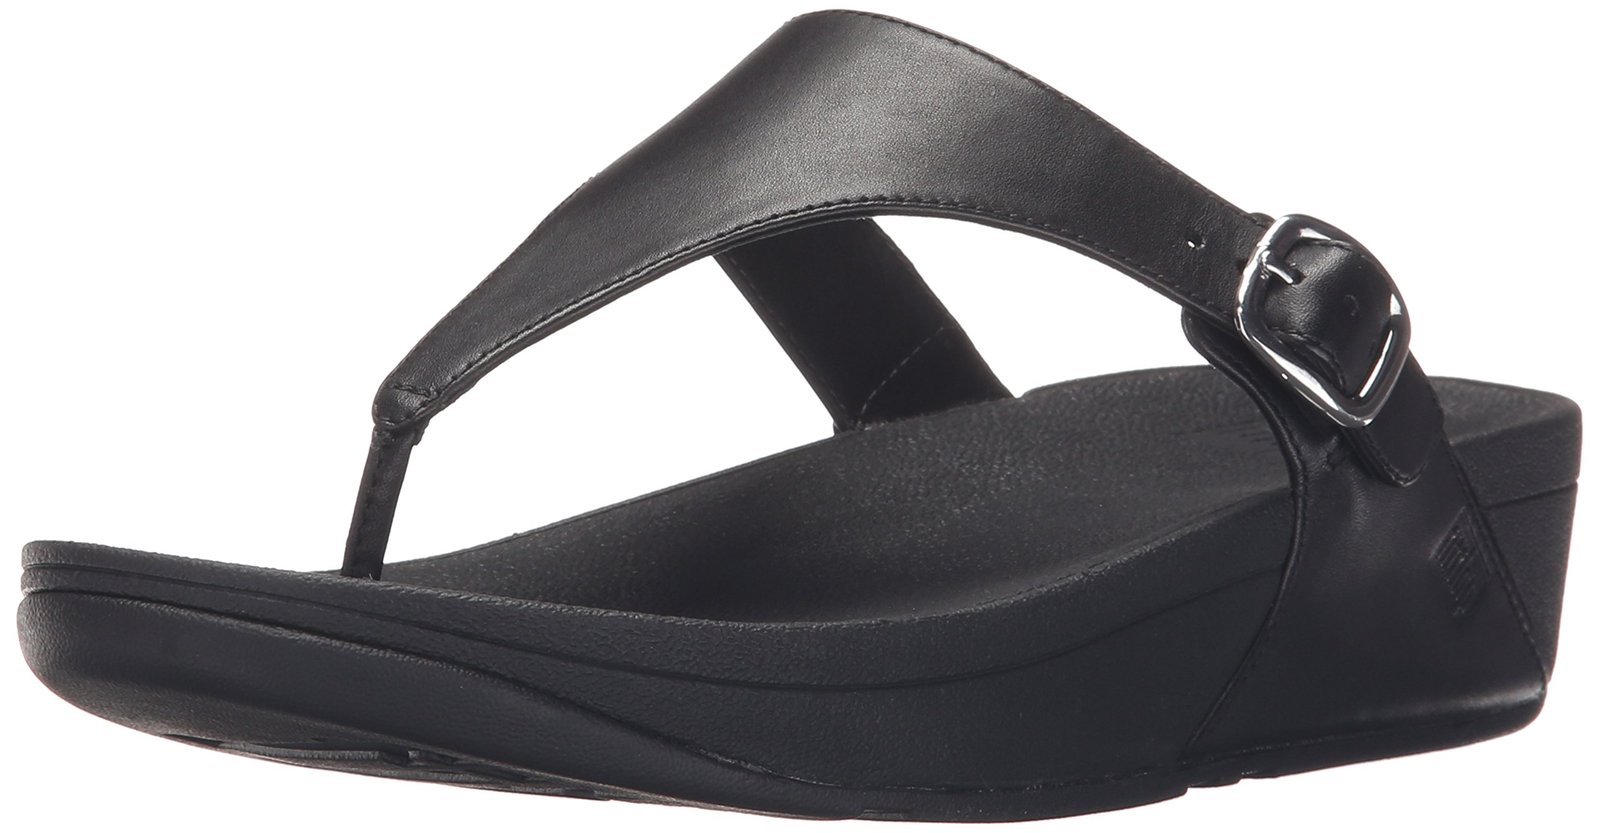 Fitflop Women's The Skinny Flip Flop, All Black, 6 M US